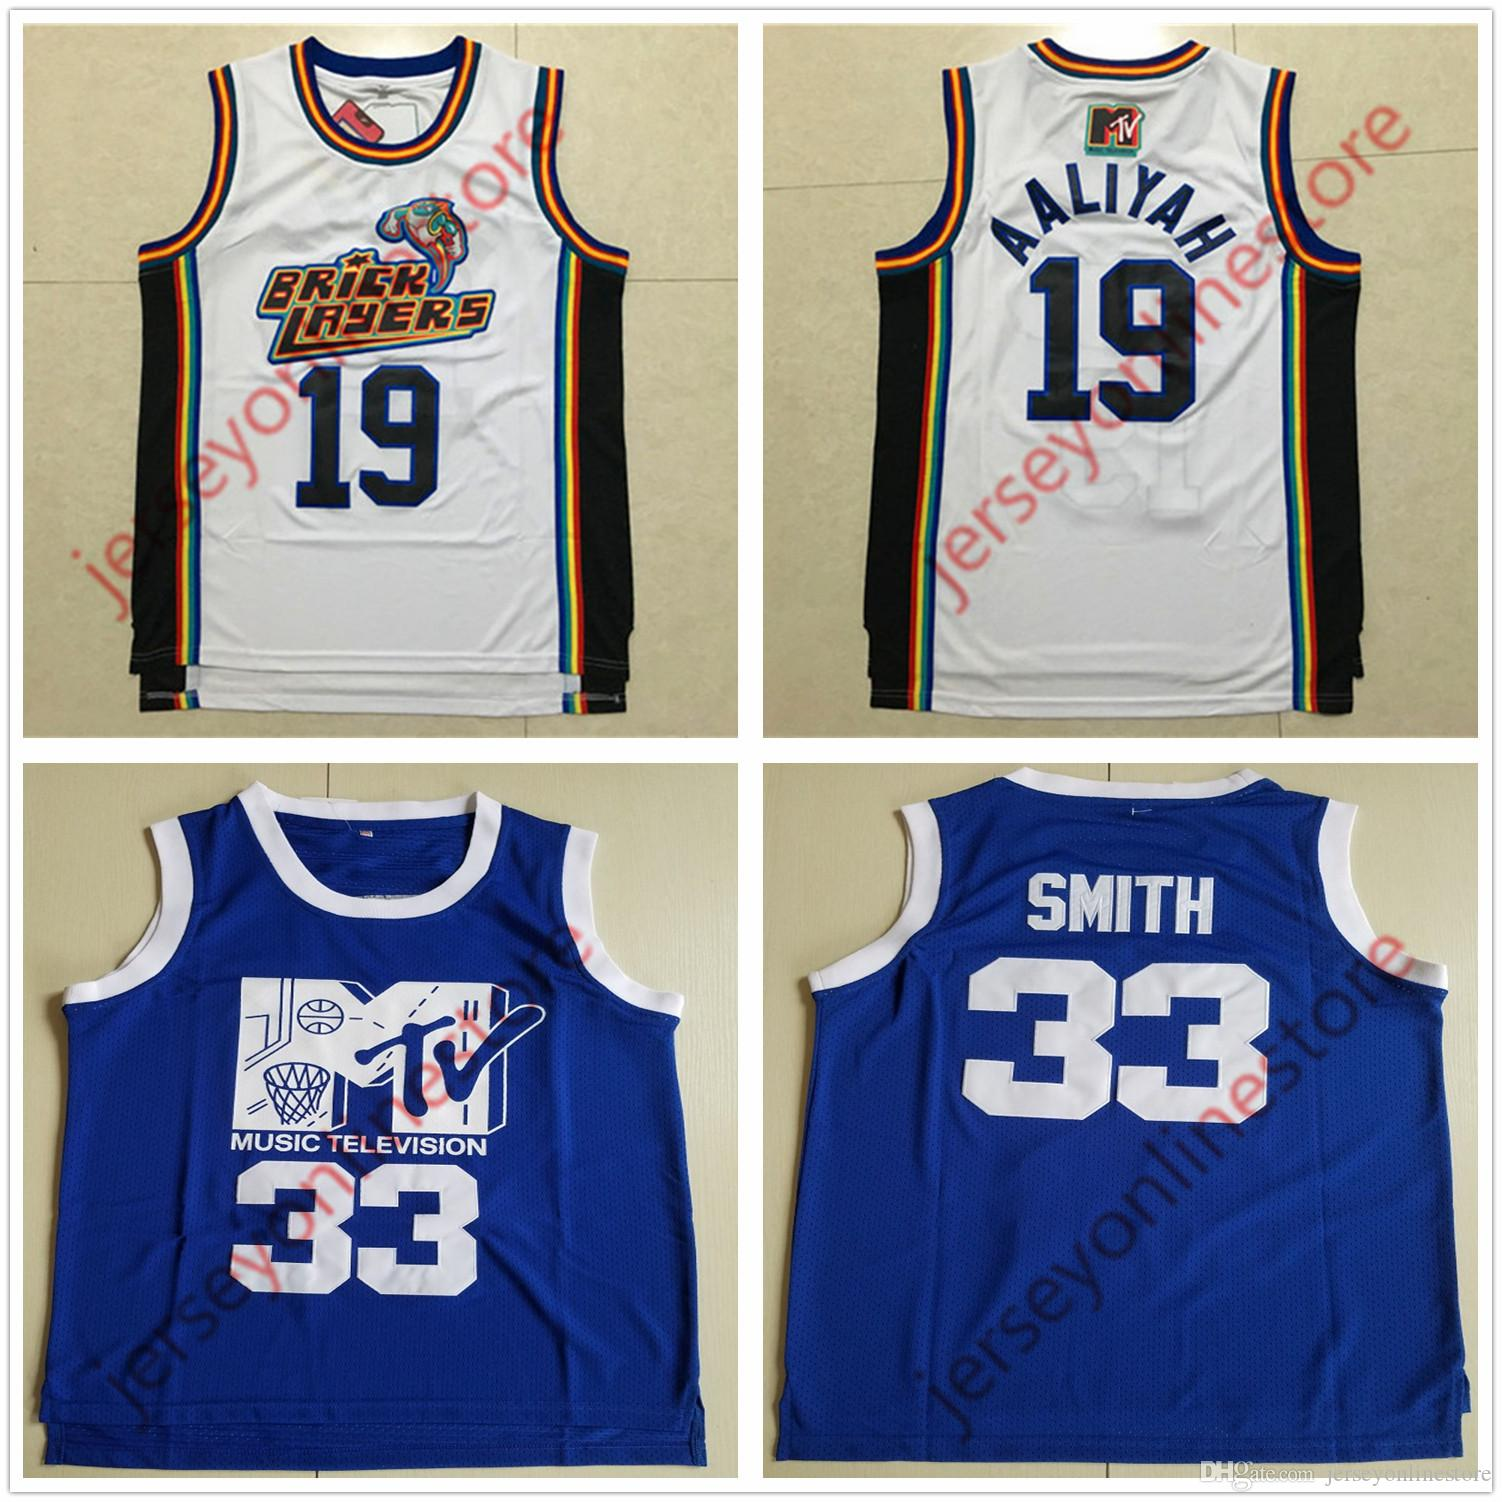 d80b7e3776aa37 2019 Men 1996 MTV Rock N Jock Bricklayers 19  Aaliyah Jersey Prima Annuale  B Ball Jam 1991 Cucito Tutto 33  Will Smith Basketball Jerseys From ...